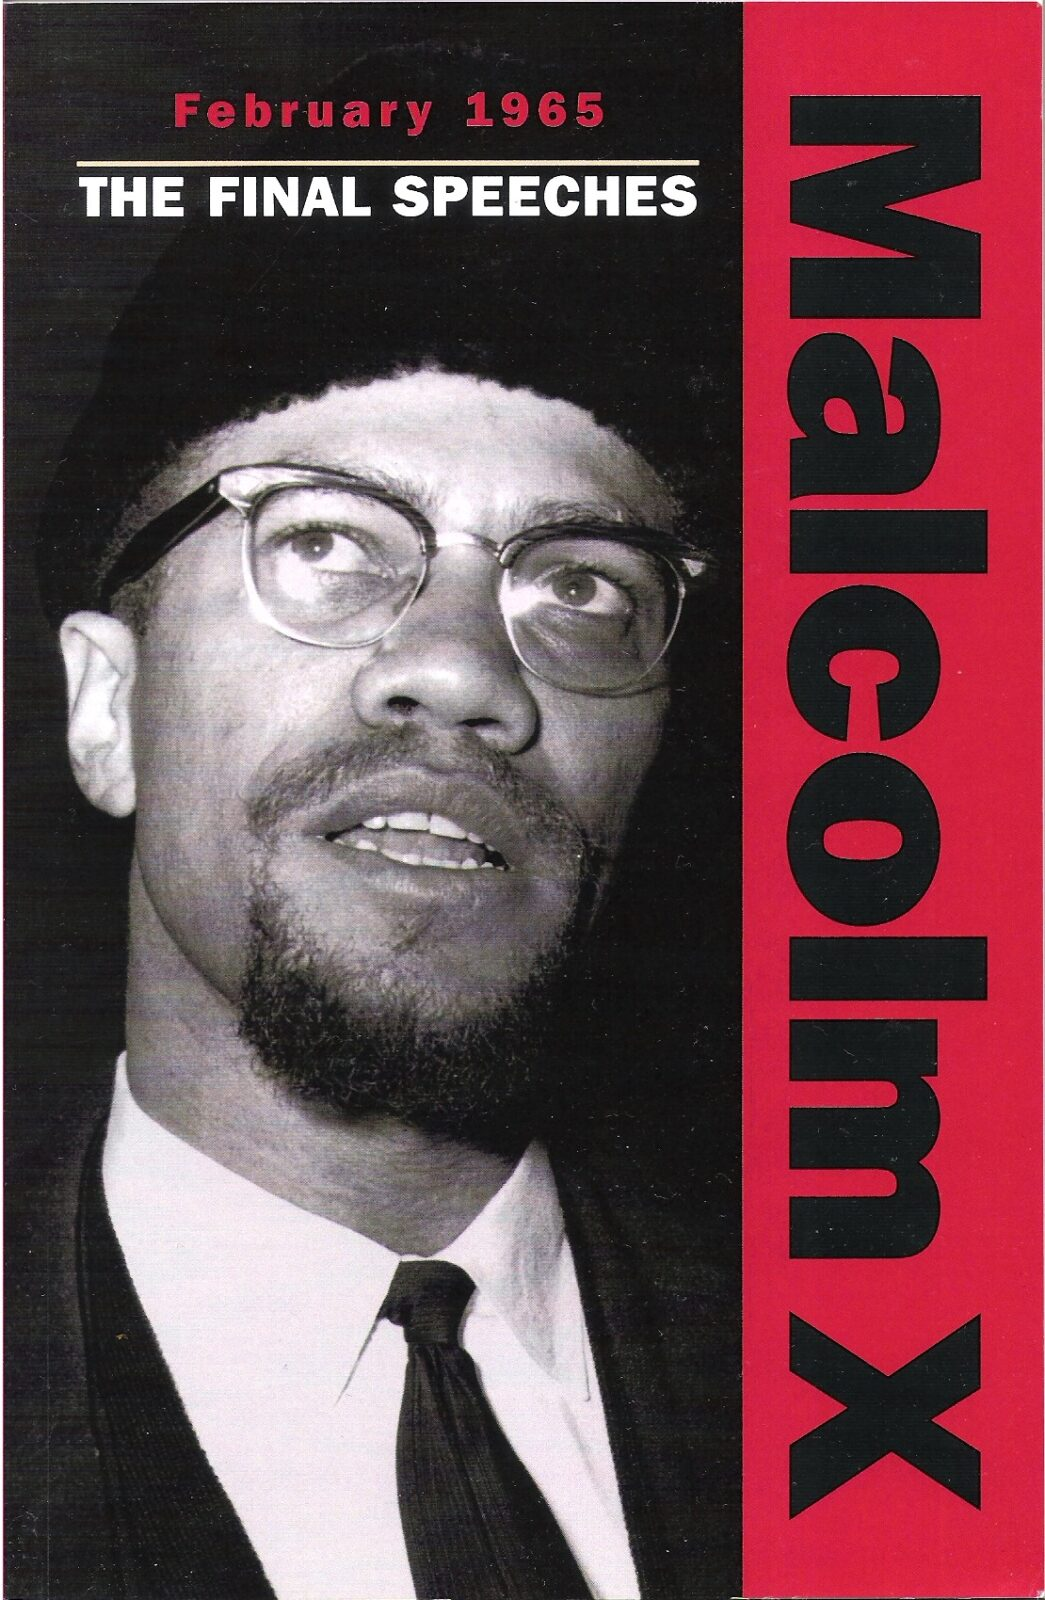 an analysis of malcolm x and martin luther king jr Everything has its opposite black has white night has day hard, soft hot, cold if there was a martin luther king jr, there had to be a malcolm x martin luther.